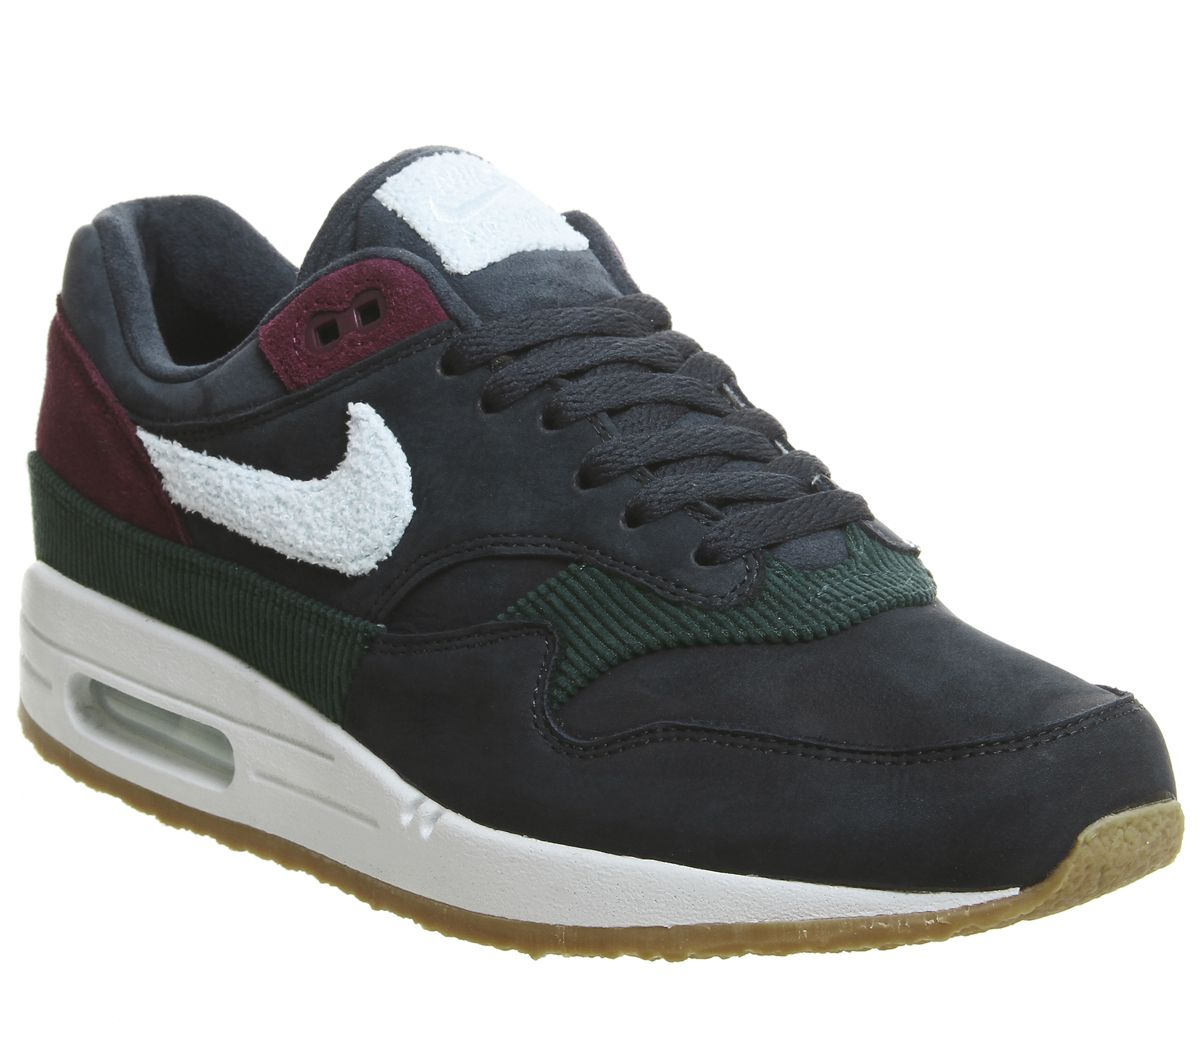 new concept 9f169 51fd2 Nike, Air Max 1 Trainers, Ocean Obsidian Crepe Sole